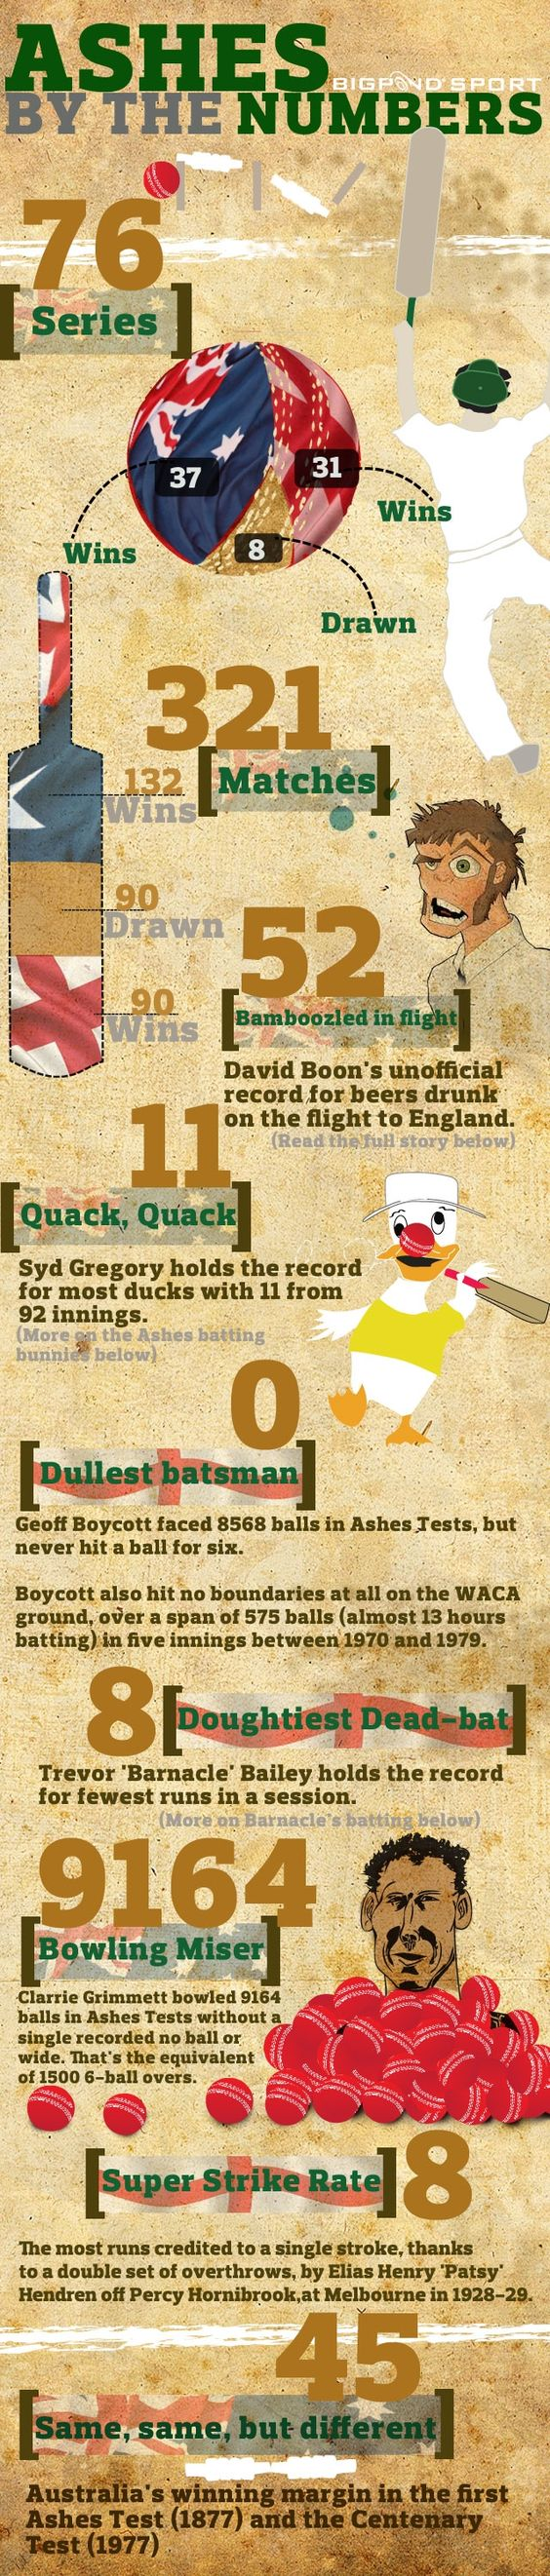 http://youthfrenzy.com/wp-content/uploads/2011/12/ashes2010infographic.jpg